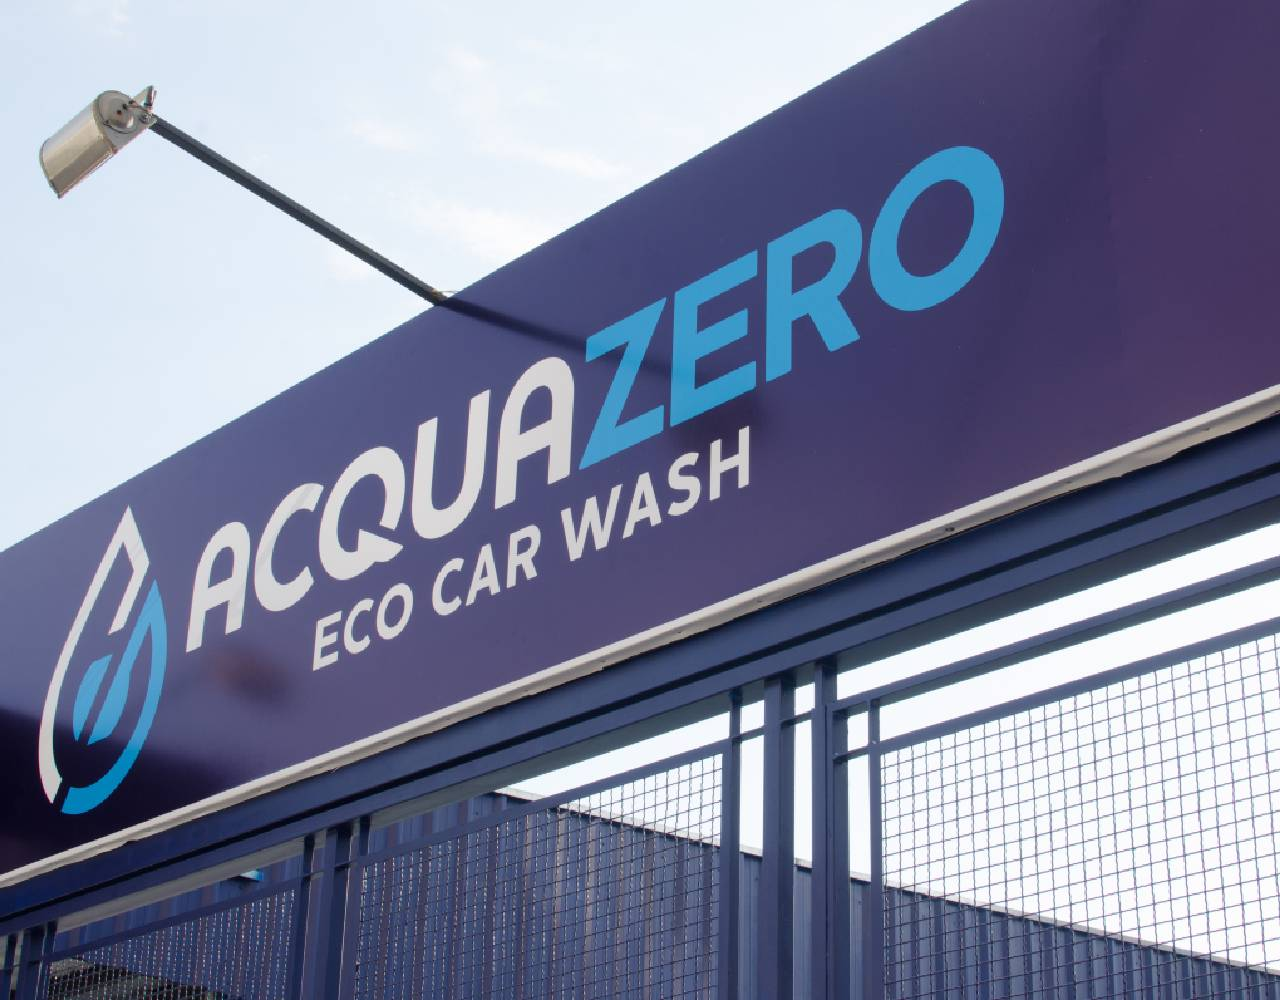 car wash next to the option